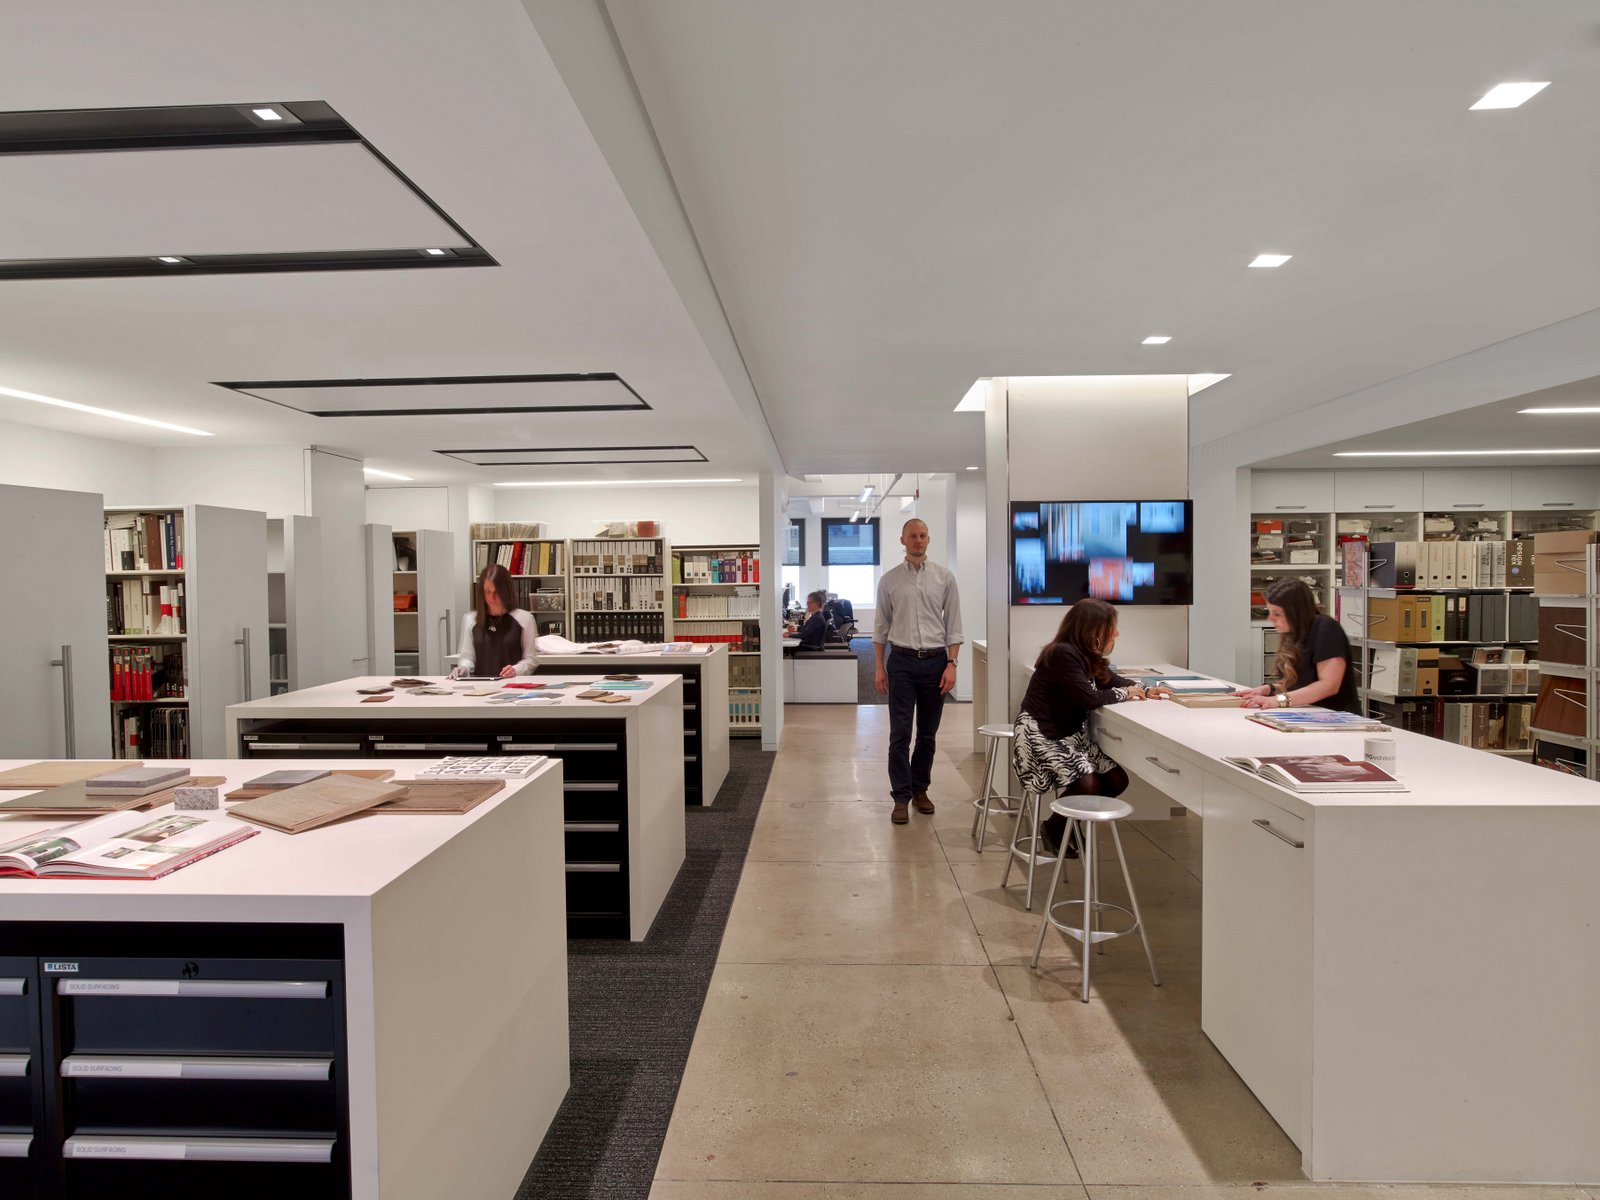 Tpg architecture offices new york city office snapshots for Office design architecture